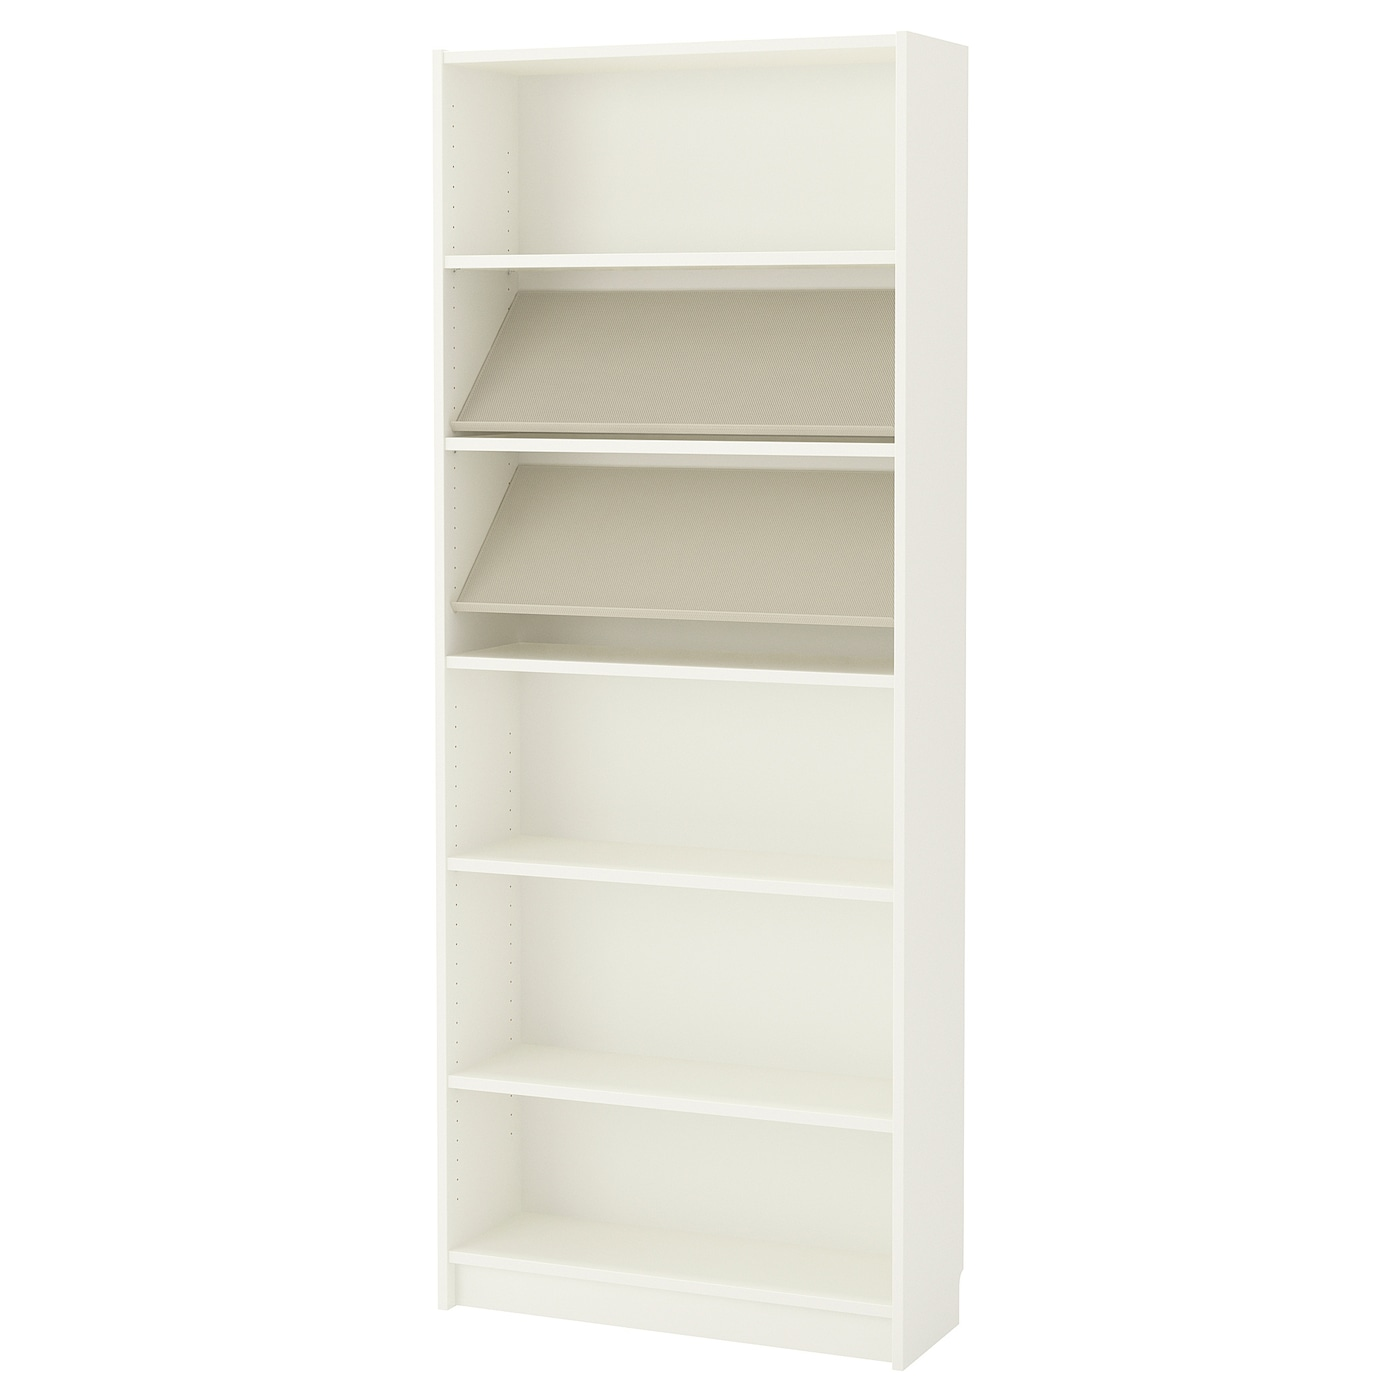 Groovy Billy Bottna Bookcase With Display Shelf White Beige Download Free Architecture Designs Intelgarnamadebymaigaardcom